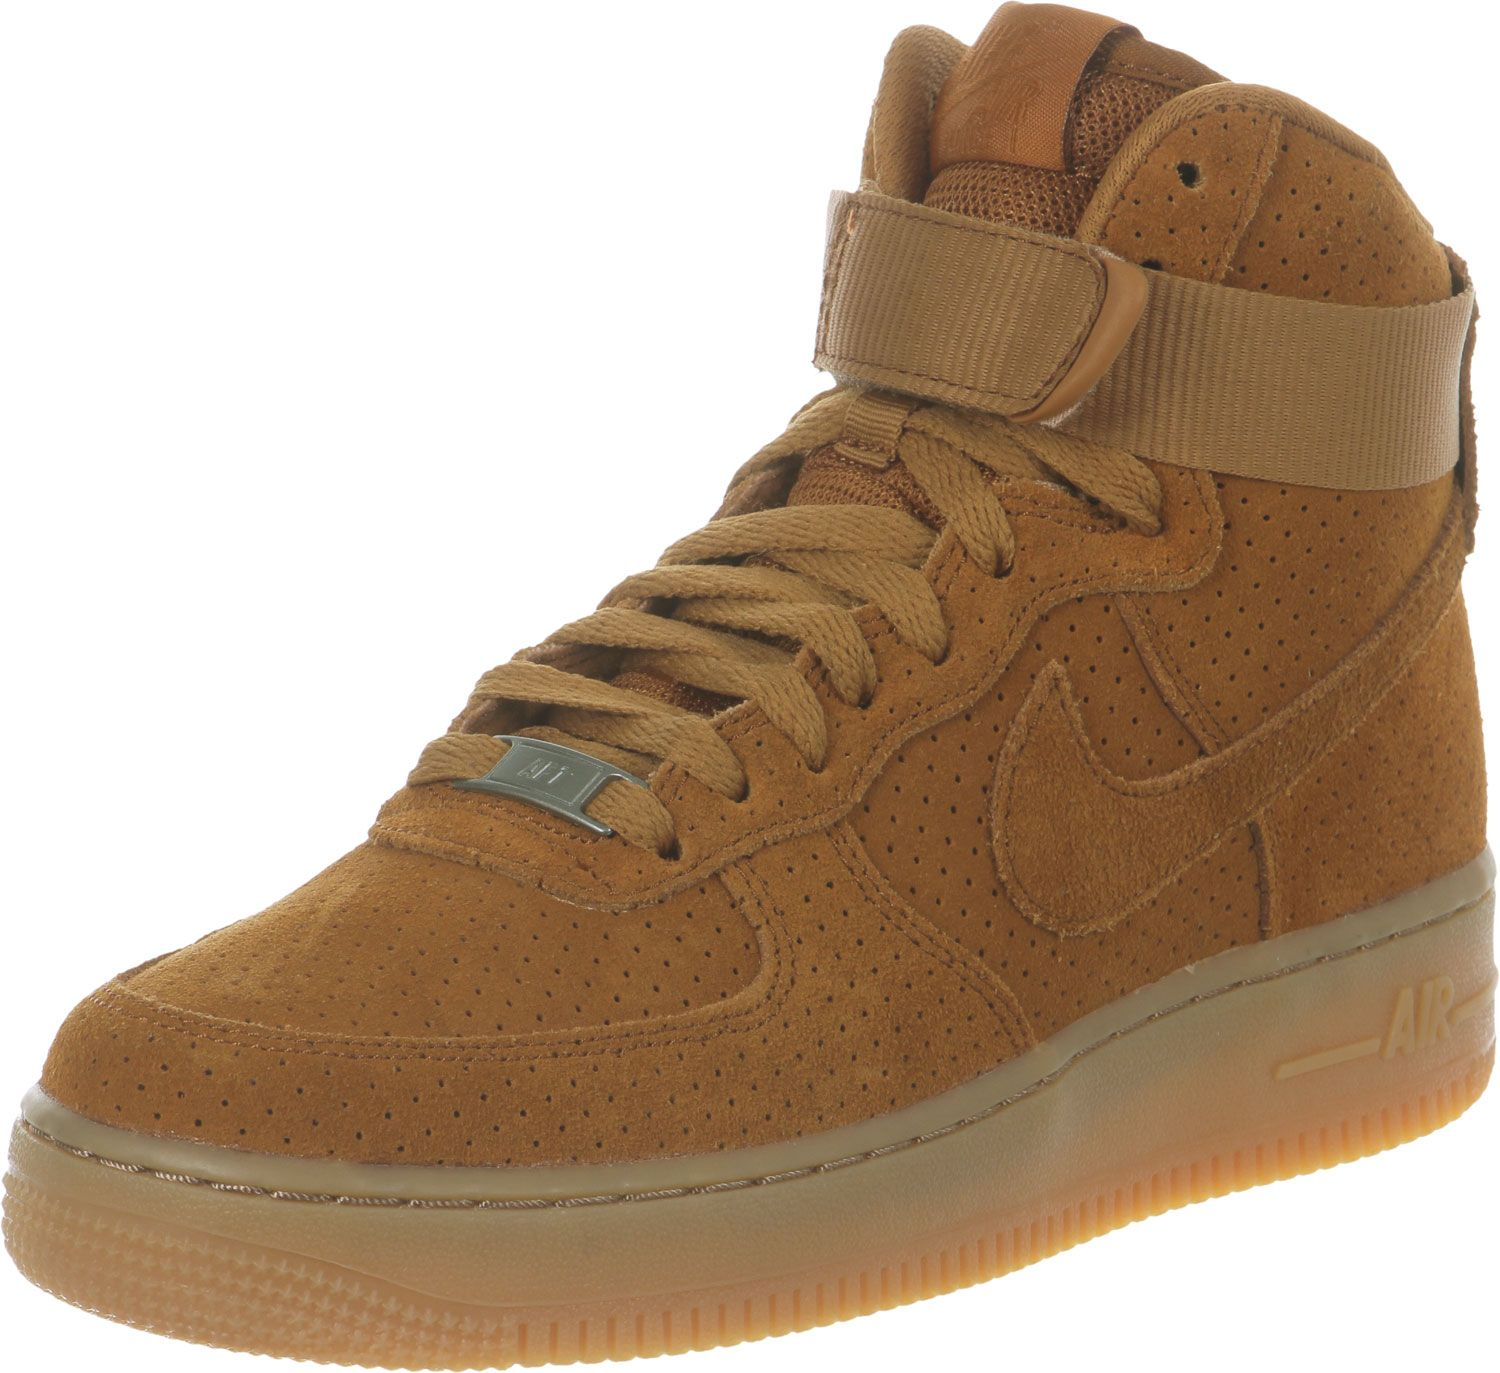 Nike Air Force 1 Hi Suede W Calzado marrón